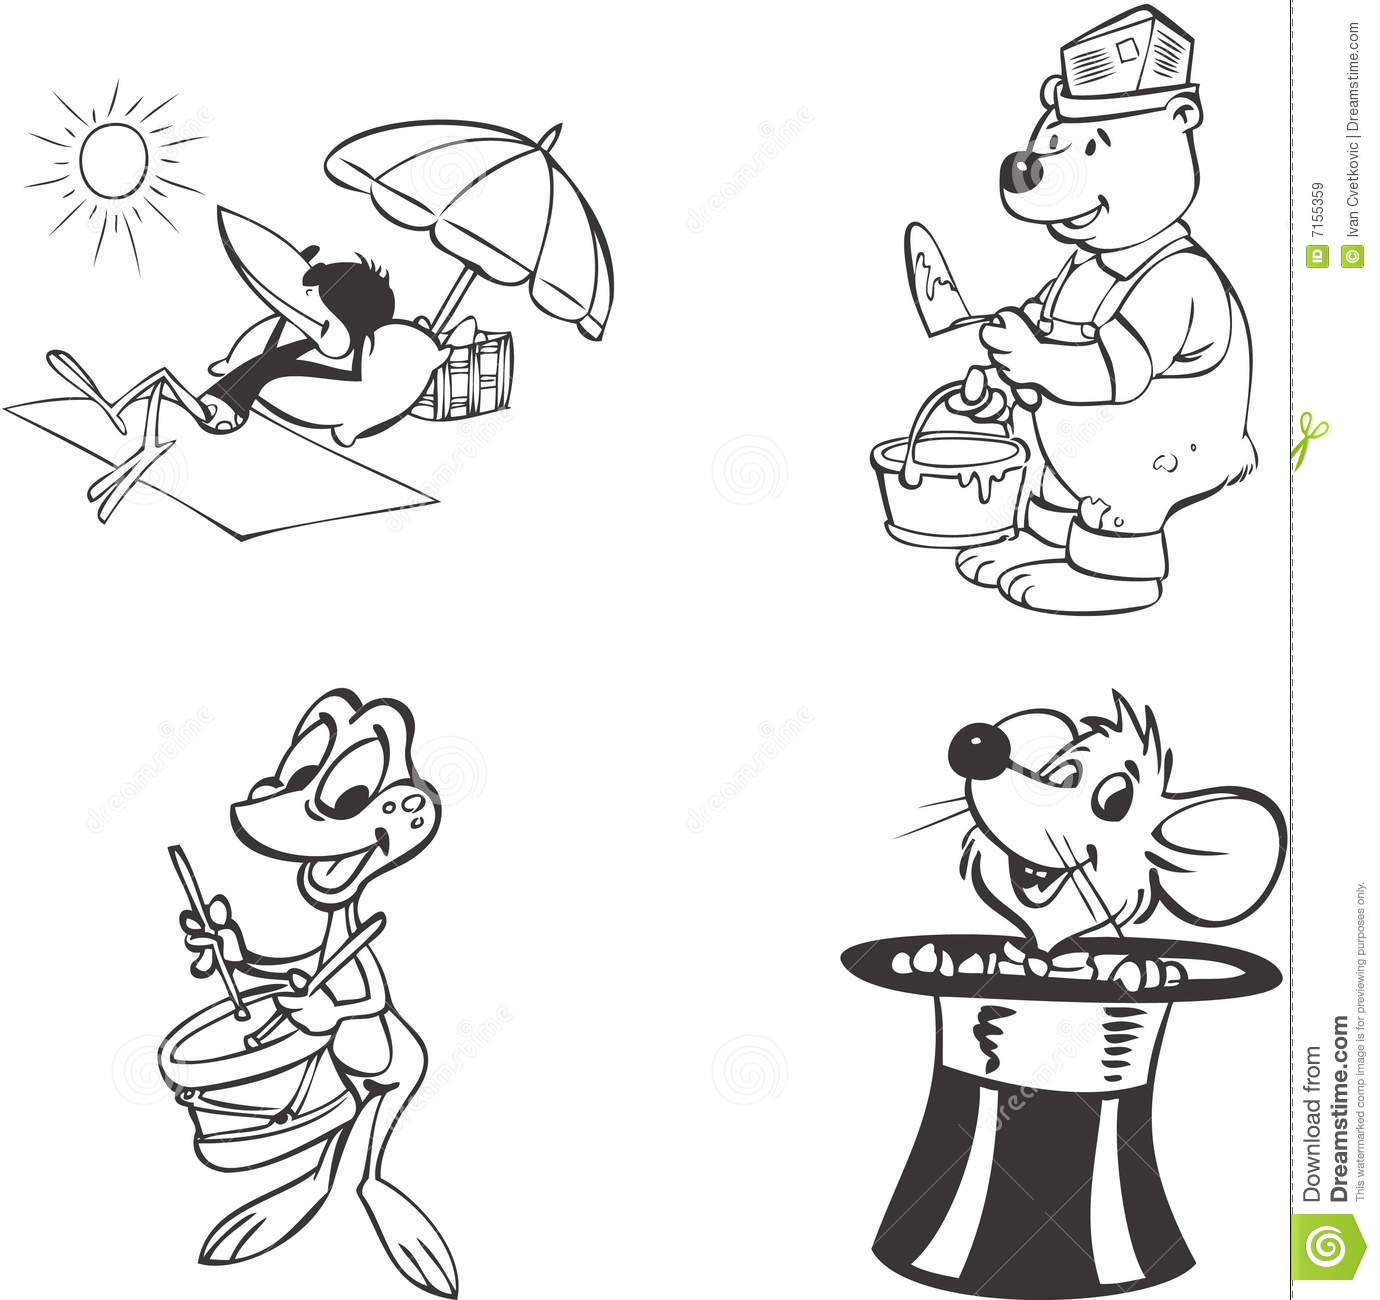 Animal Mascots Royalty Free Stock Images